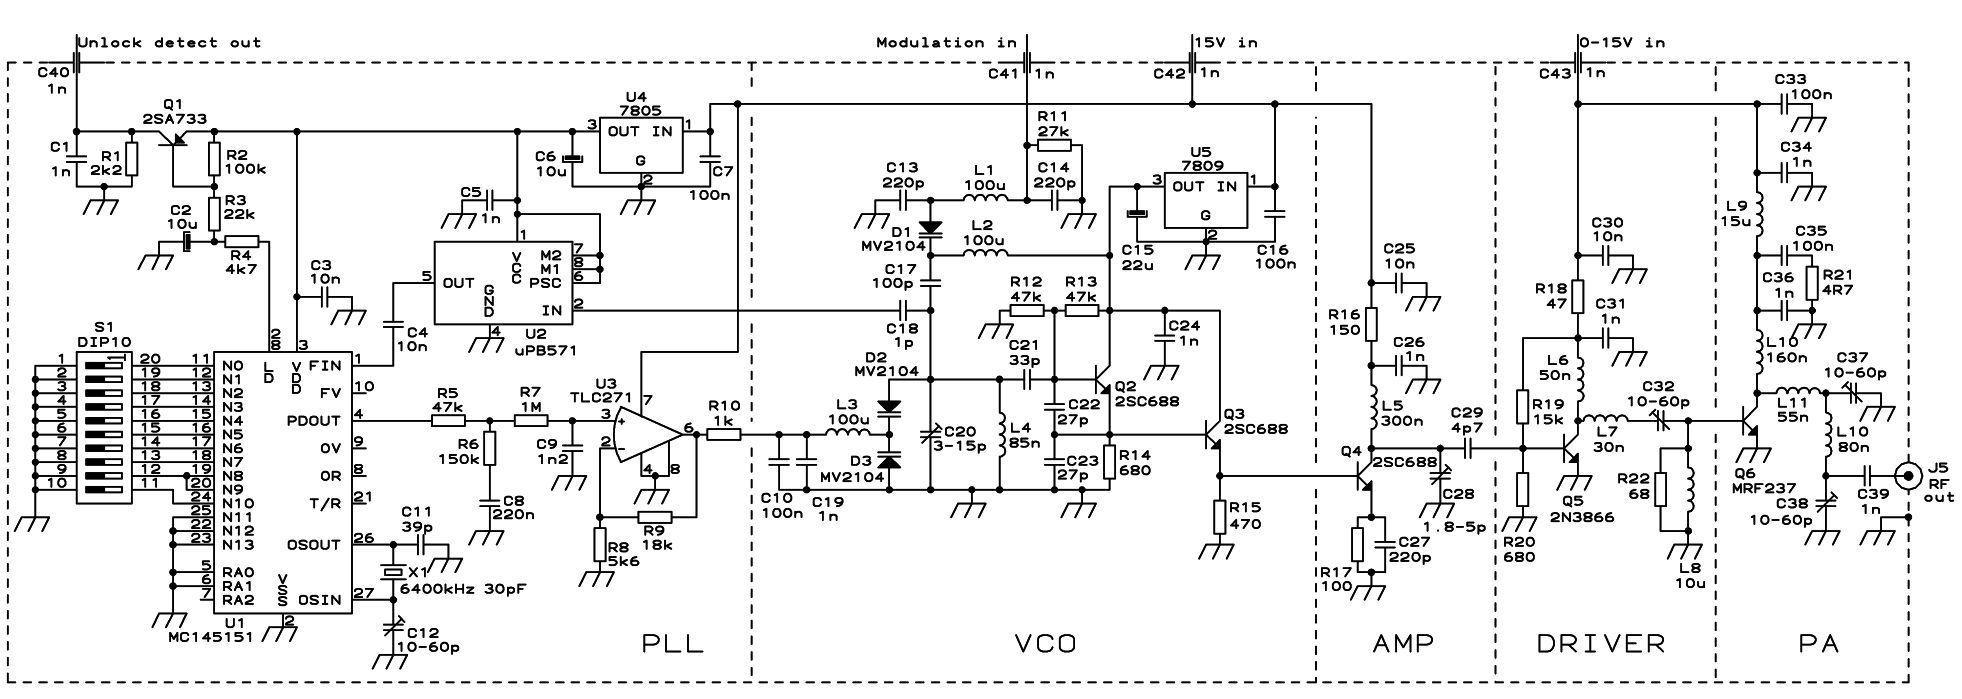 1000 Watts Amplifier Circuit Diagrams Pll Fm Transmitter Circuit Under Repository Circuits